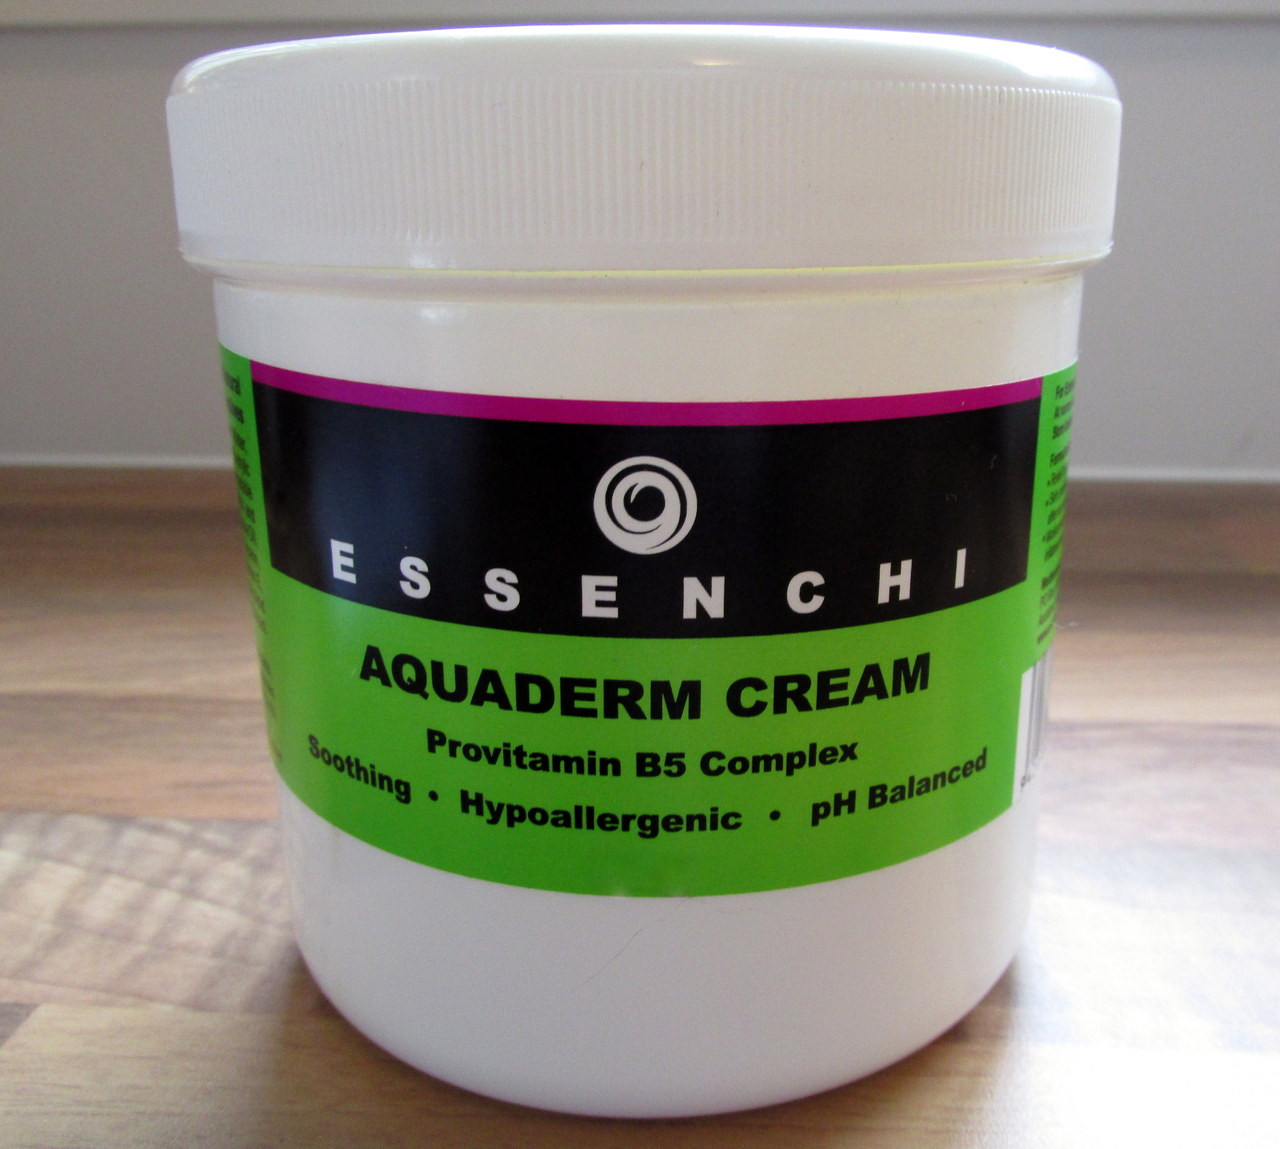 Essenchi Aquaderm Cream